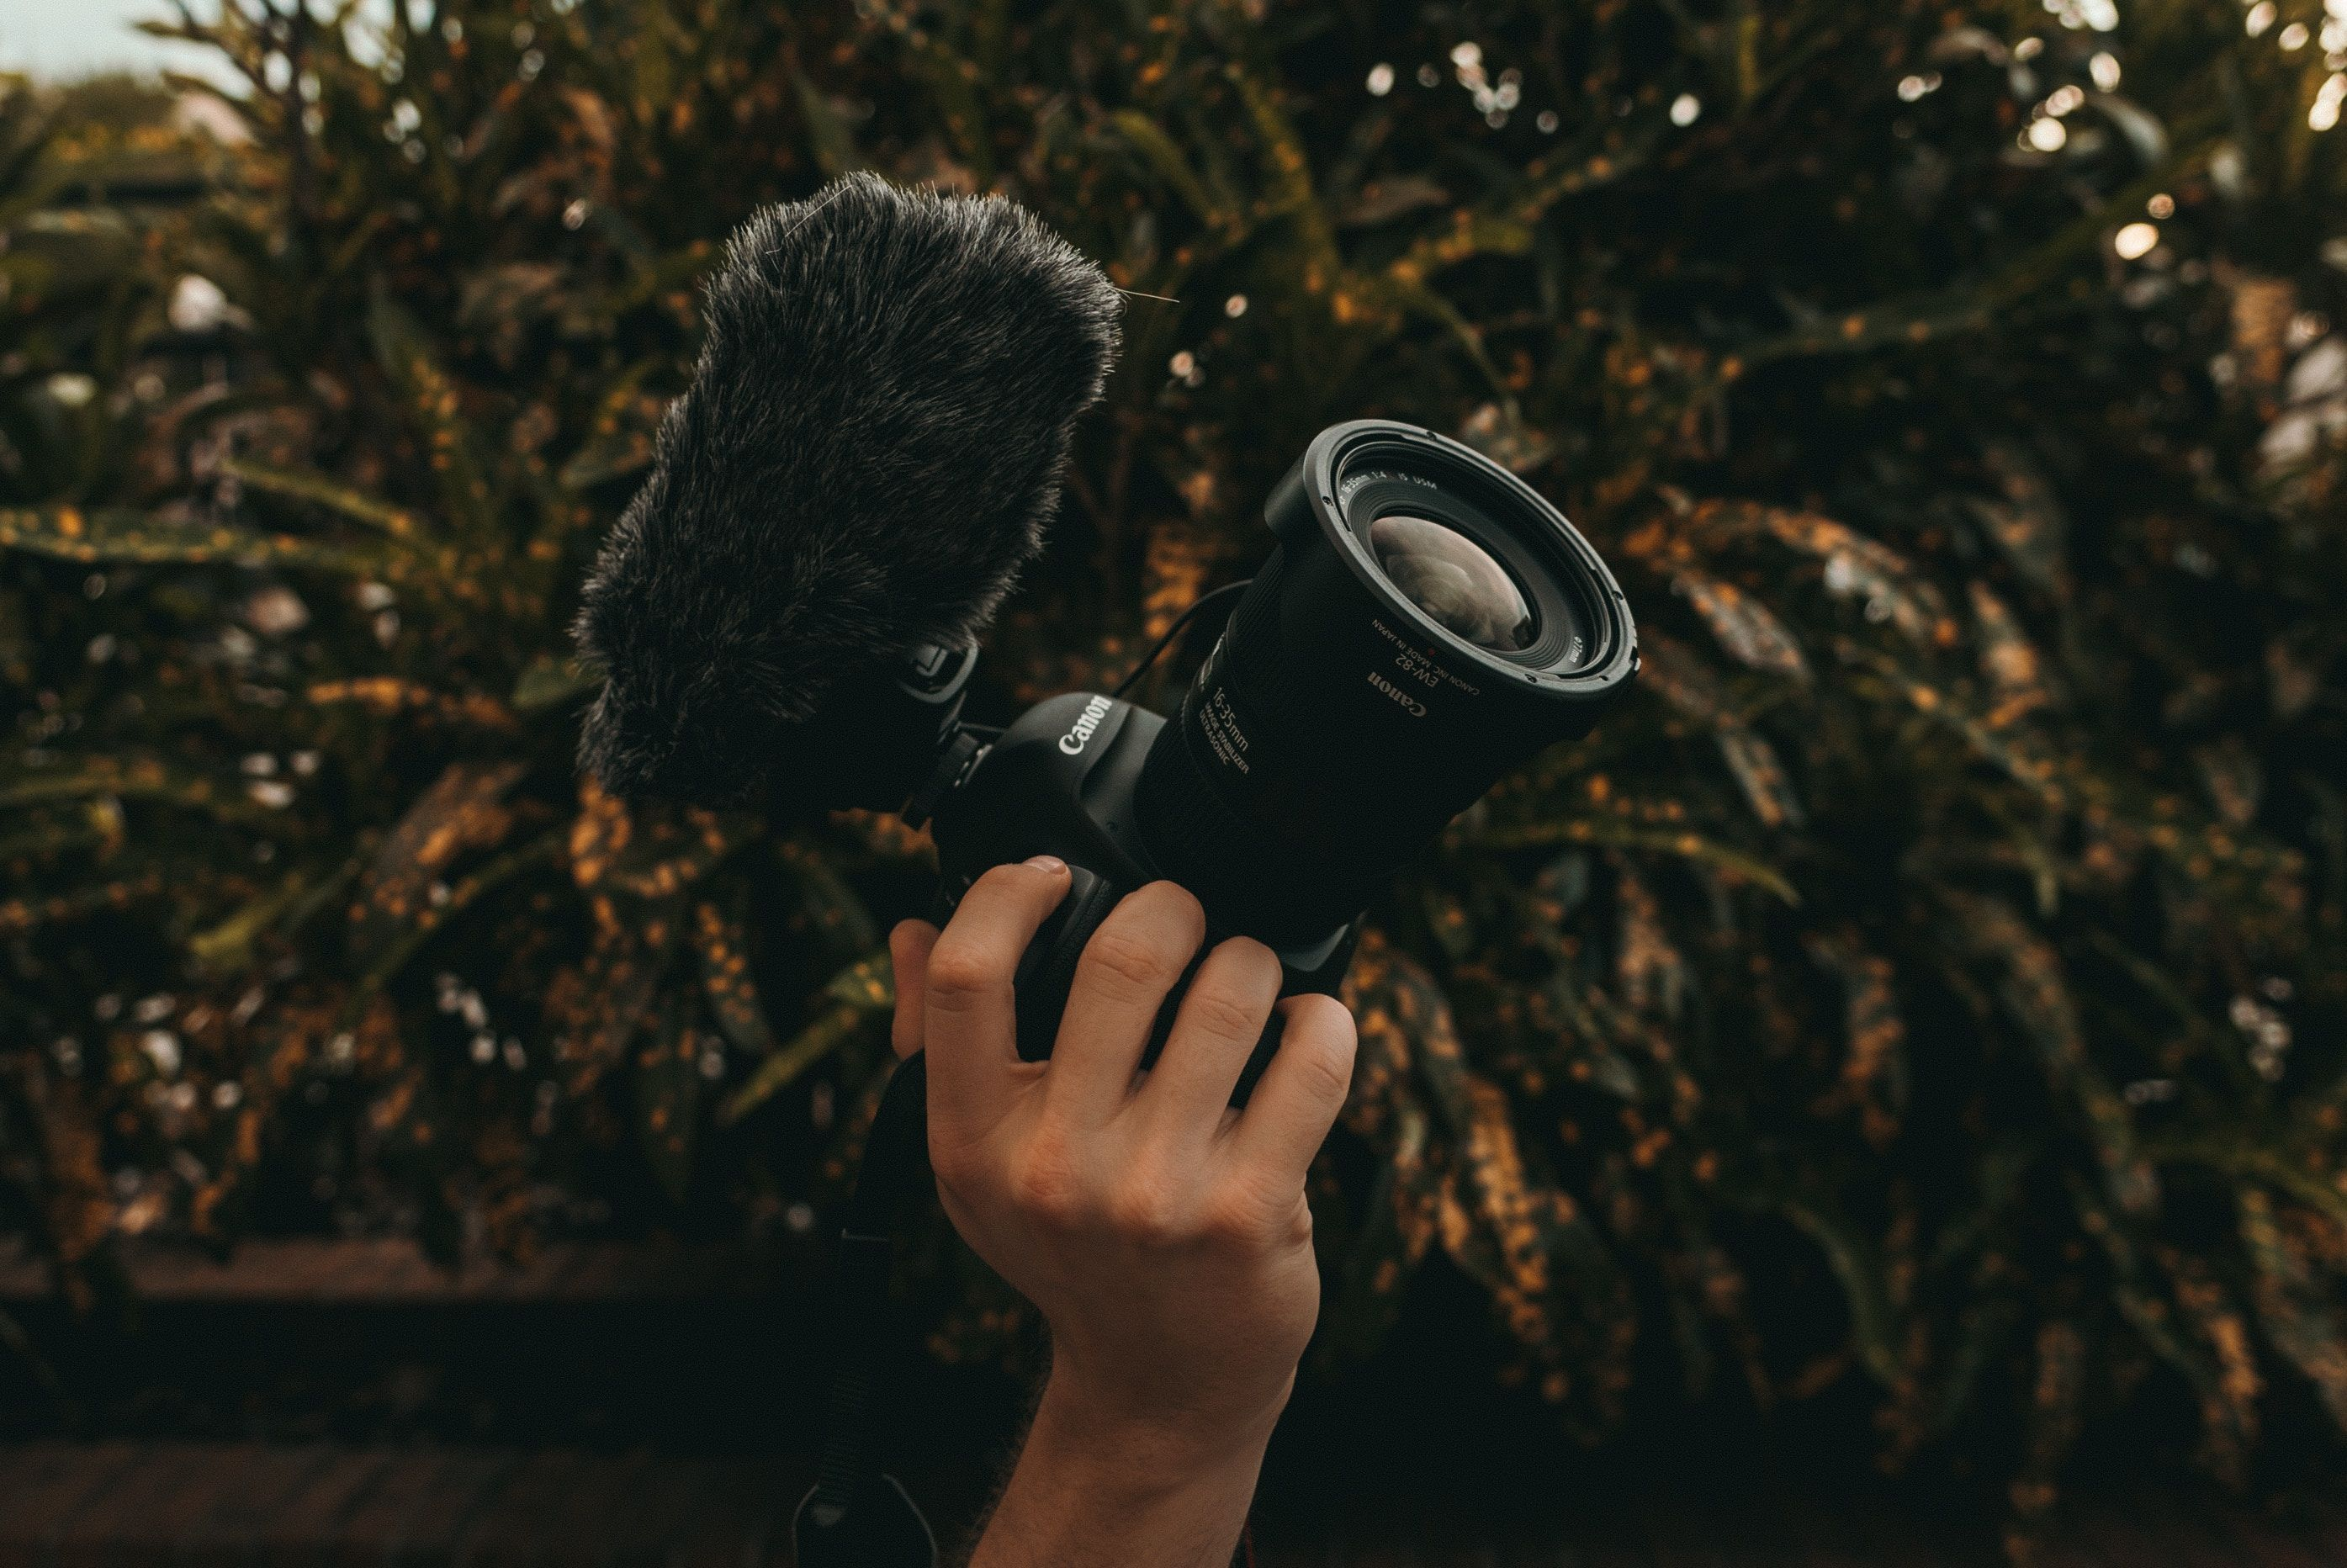 Video Production Bootcamp | Video camera, Amazon video ...